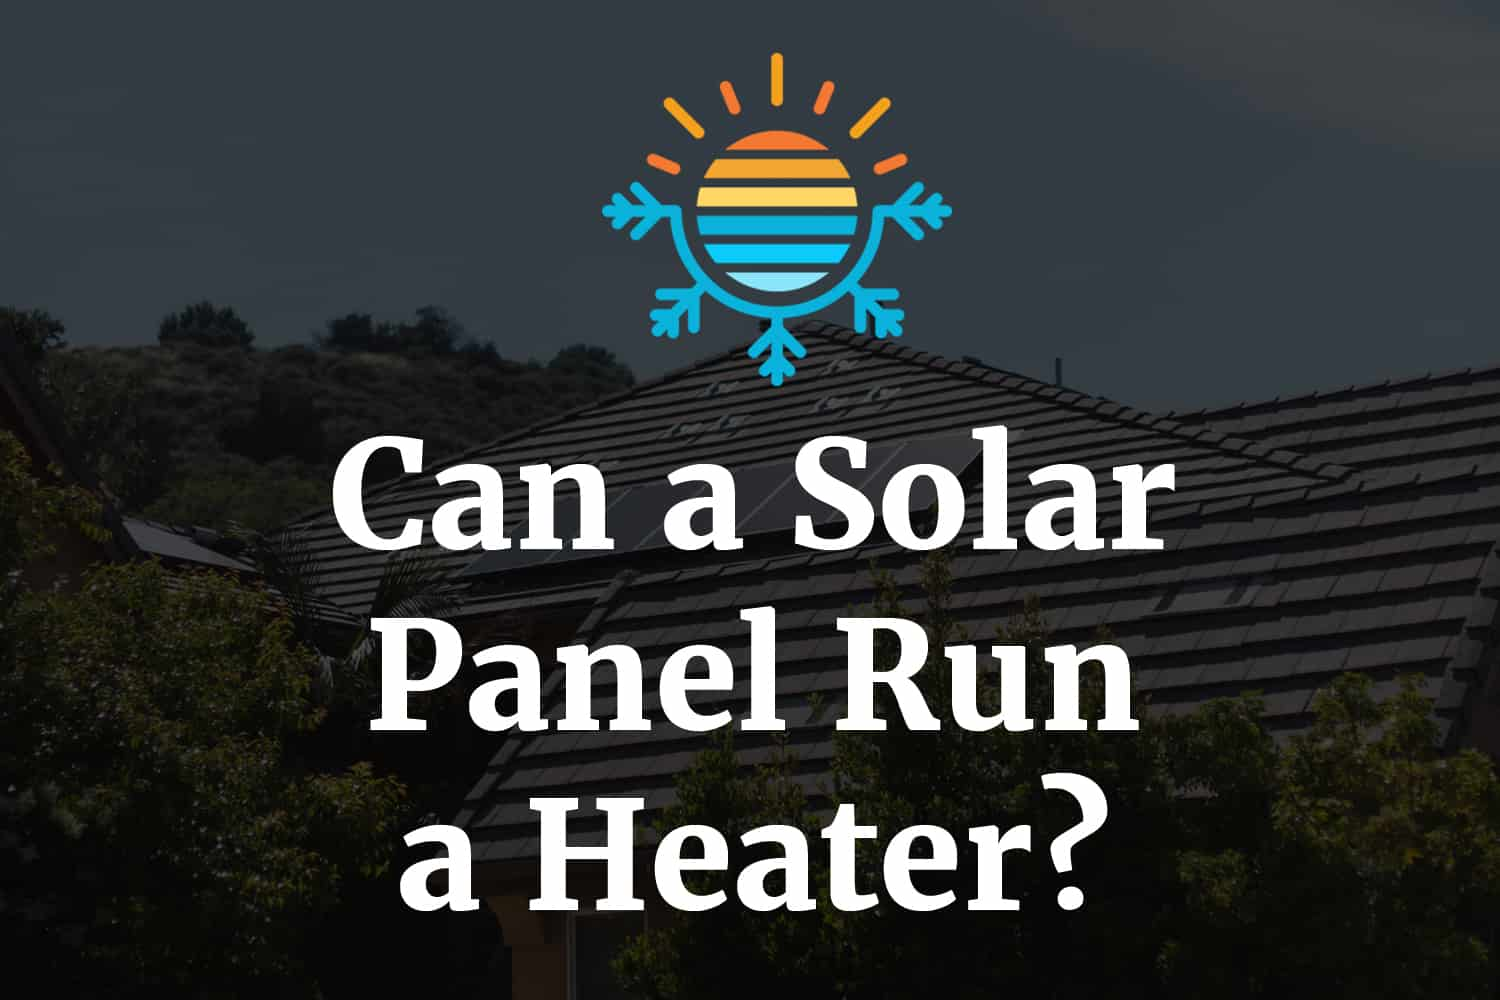 Can a solar panel run a heater